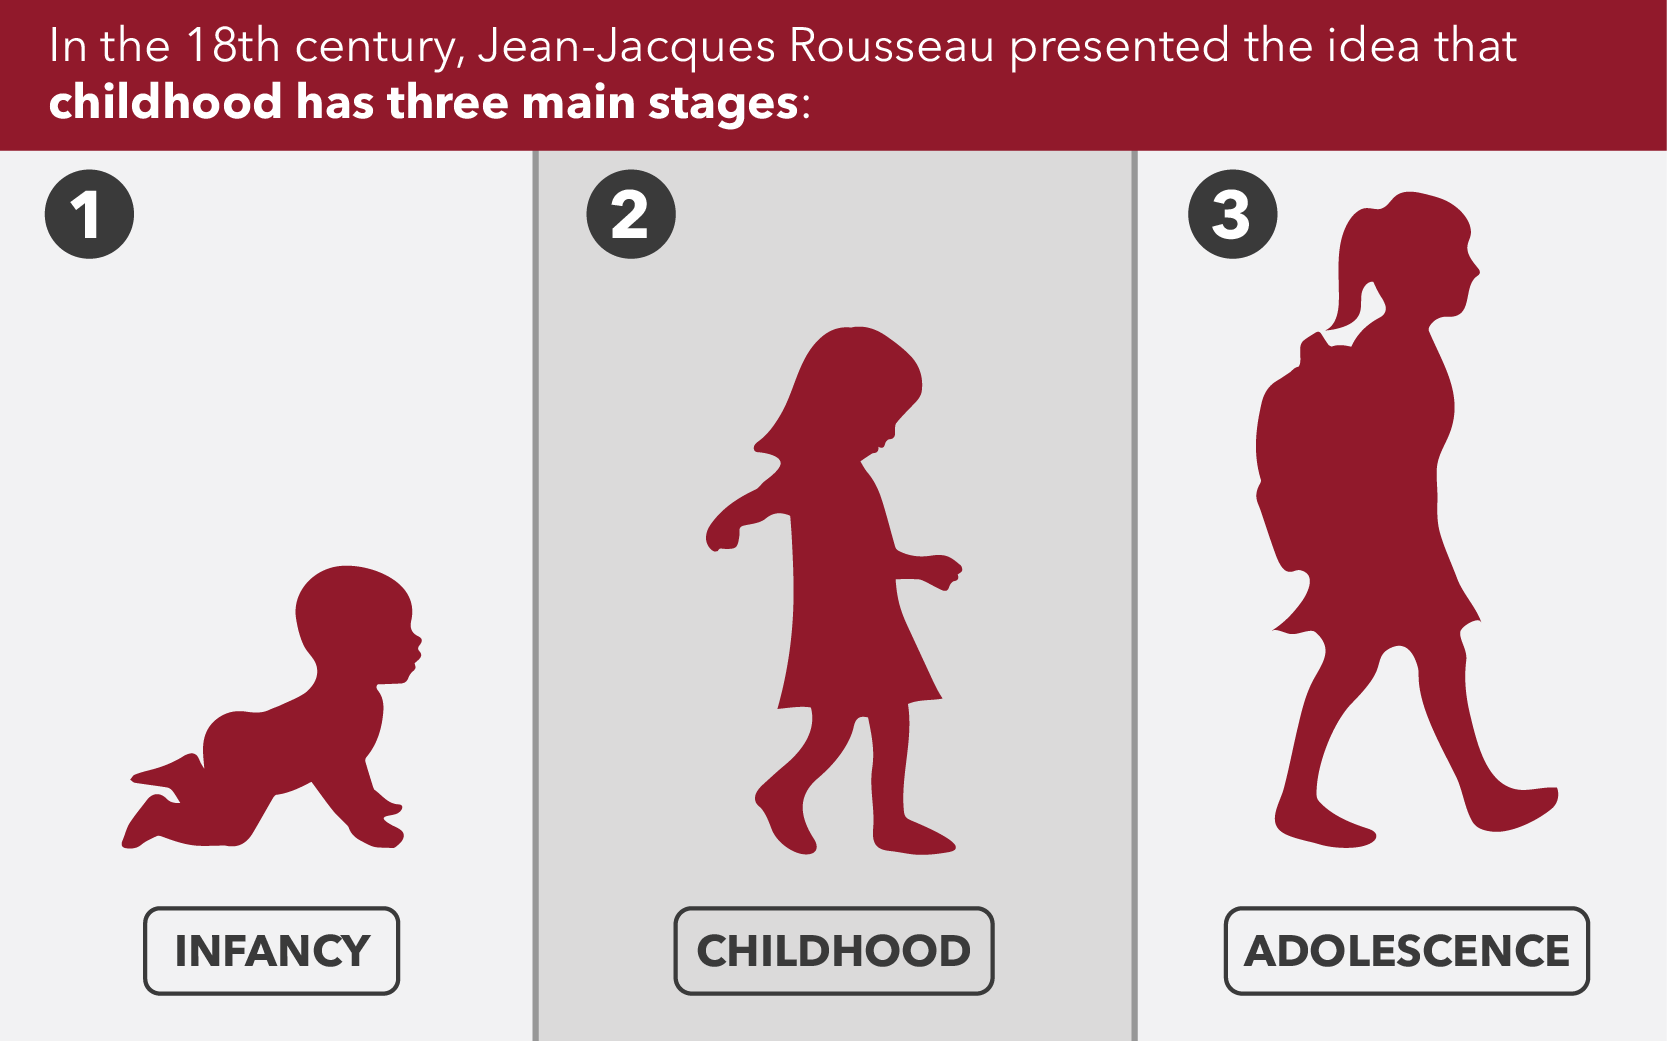 Jean-Jacques Rousseau Theory of Childhood Development